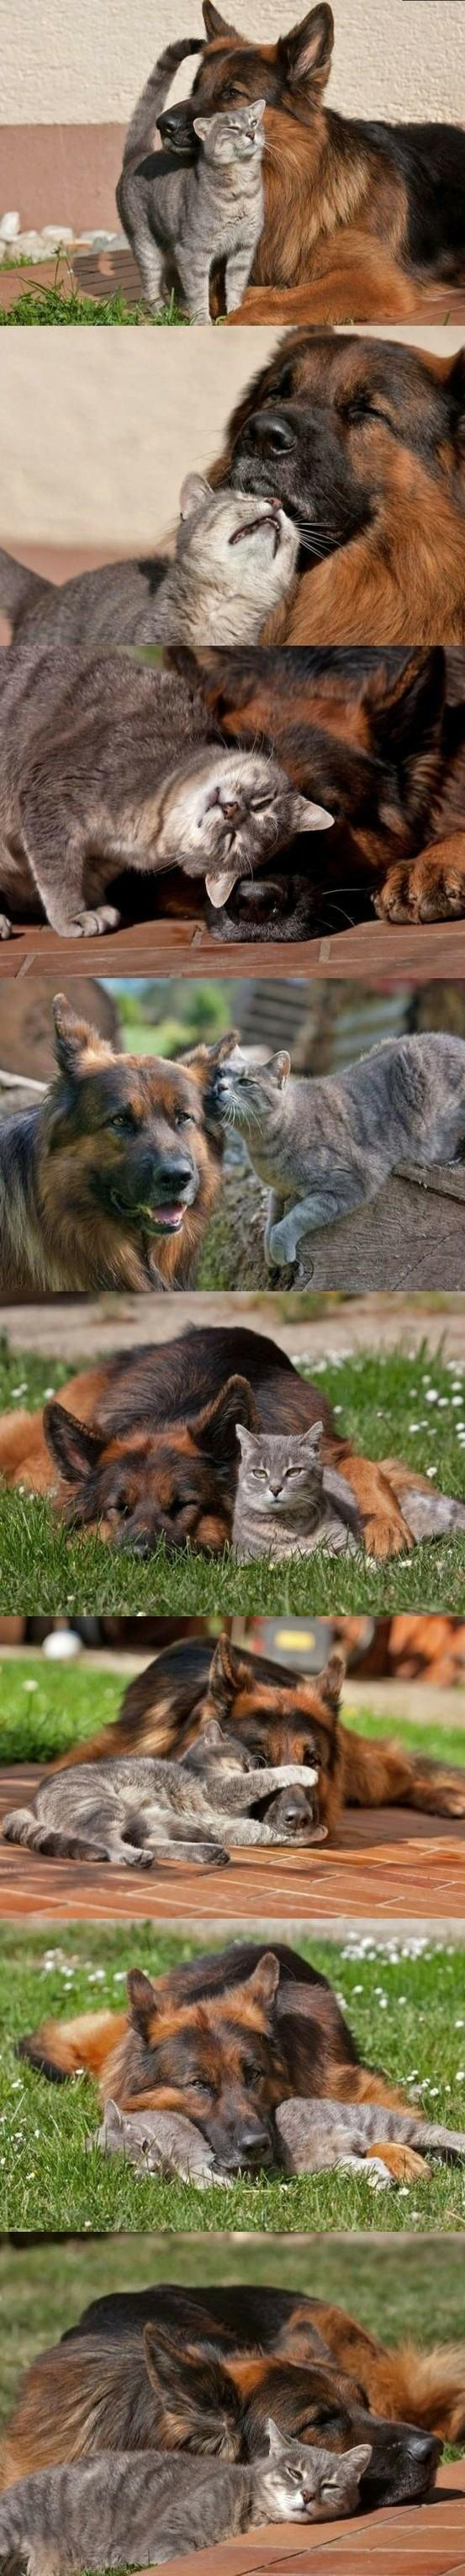 Cuddly Dog and Cat Friendship